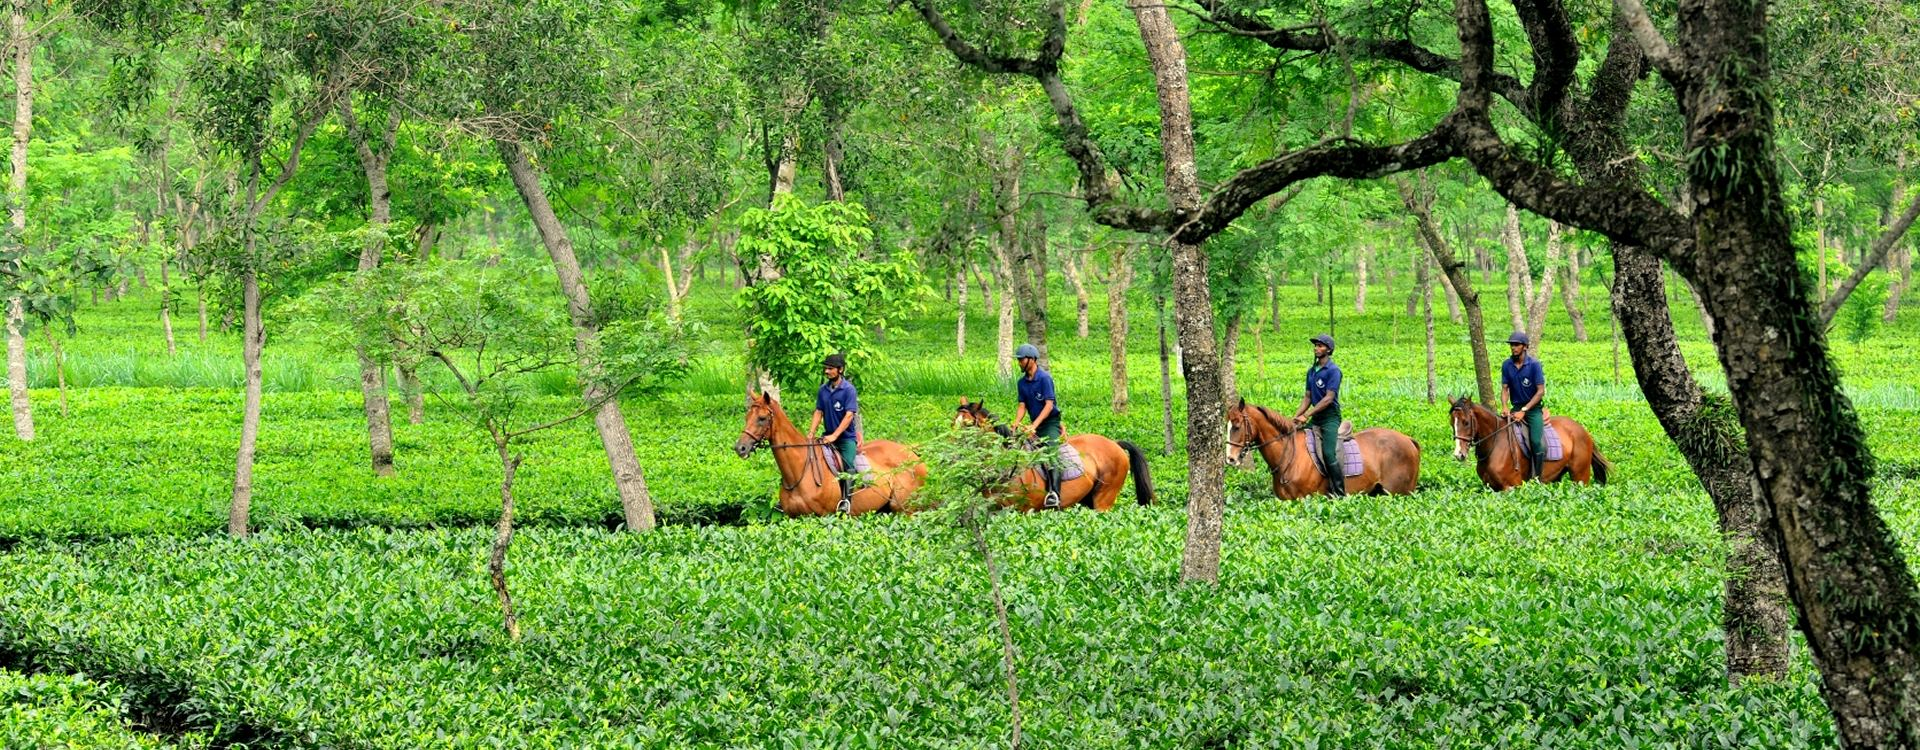 Riding through the tea gardens of Assam